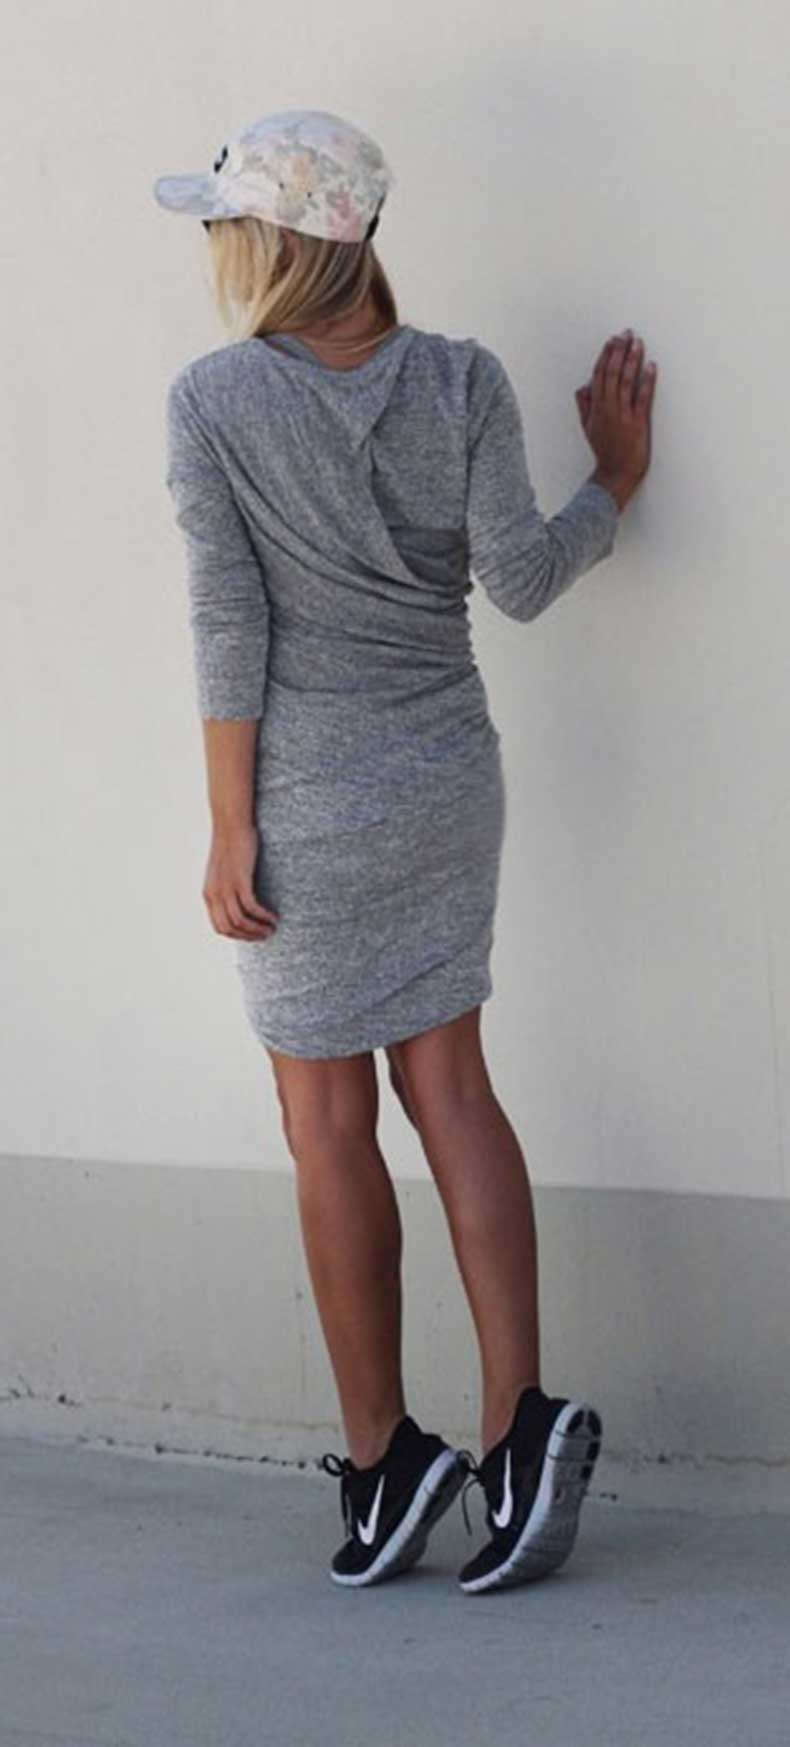 Long-Sleeve-Dress-Nike-Sneakers-Outfit